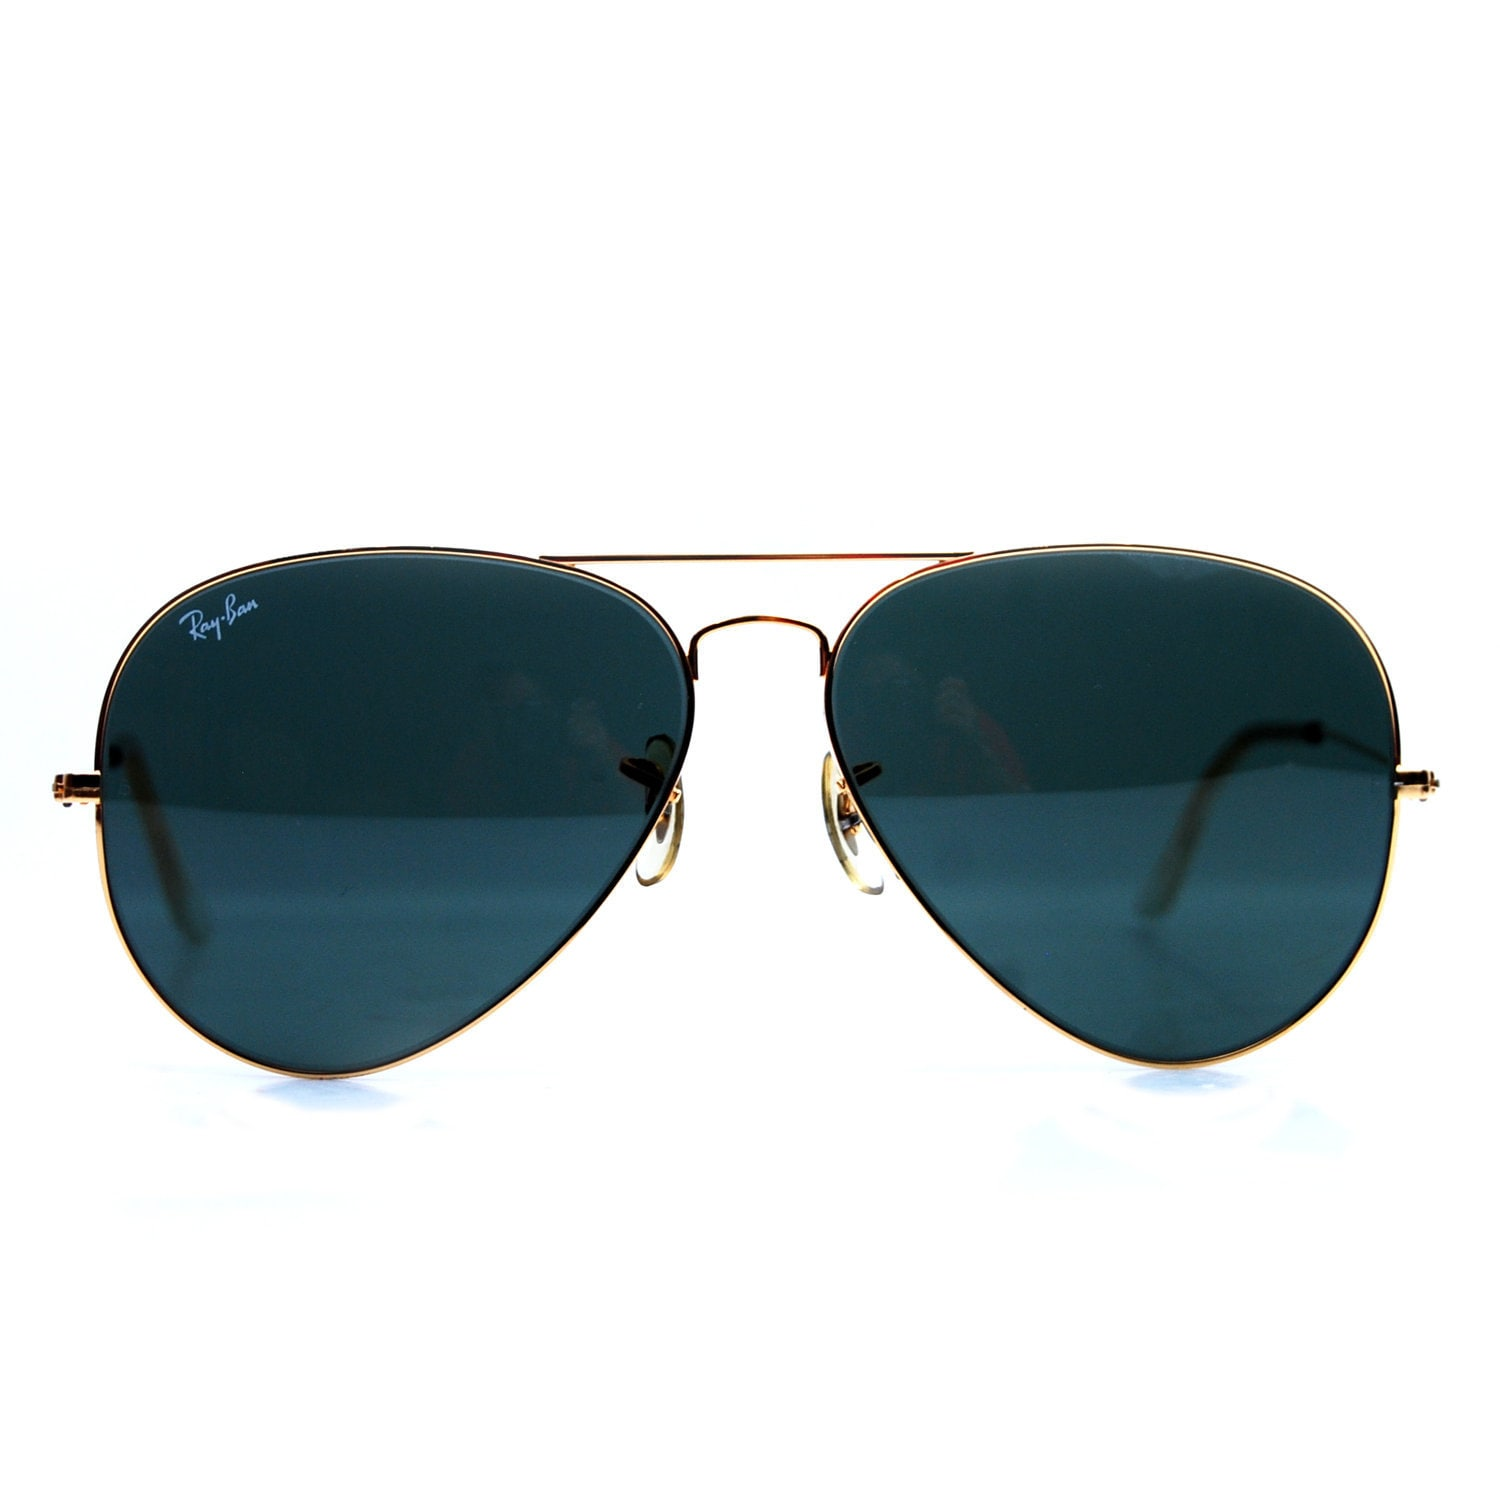 Vintage Aviators Sunglasses 121